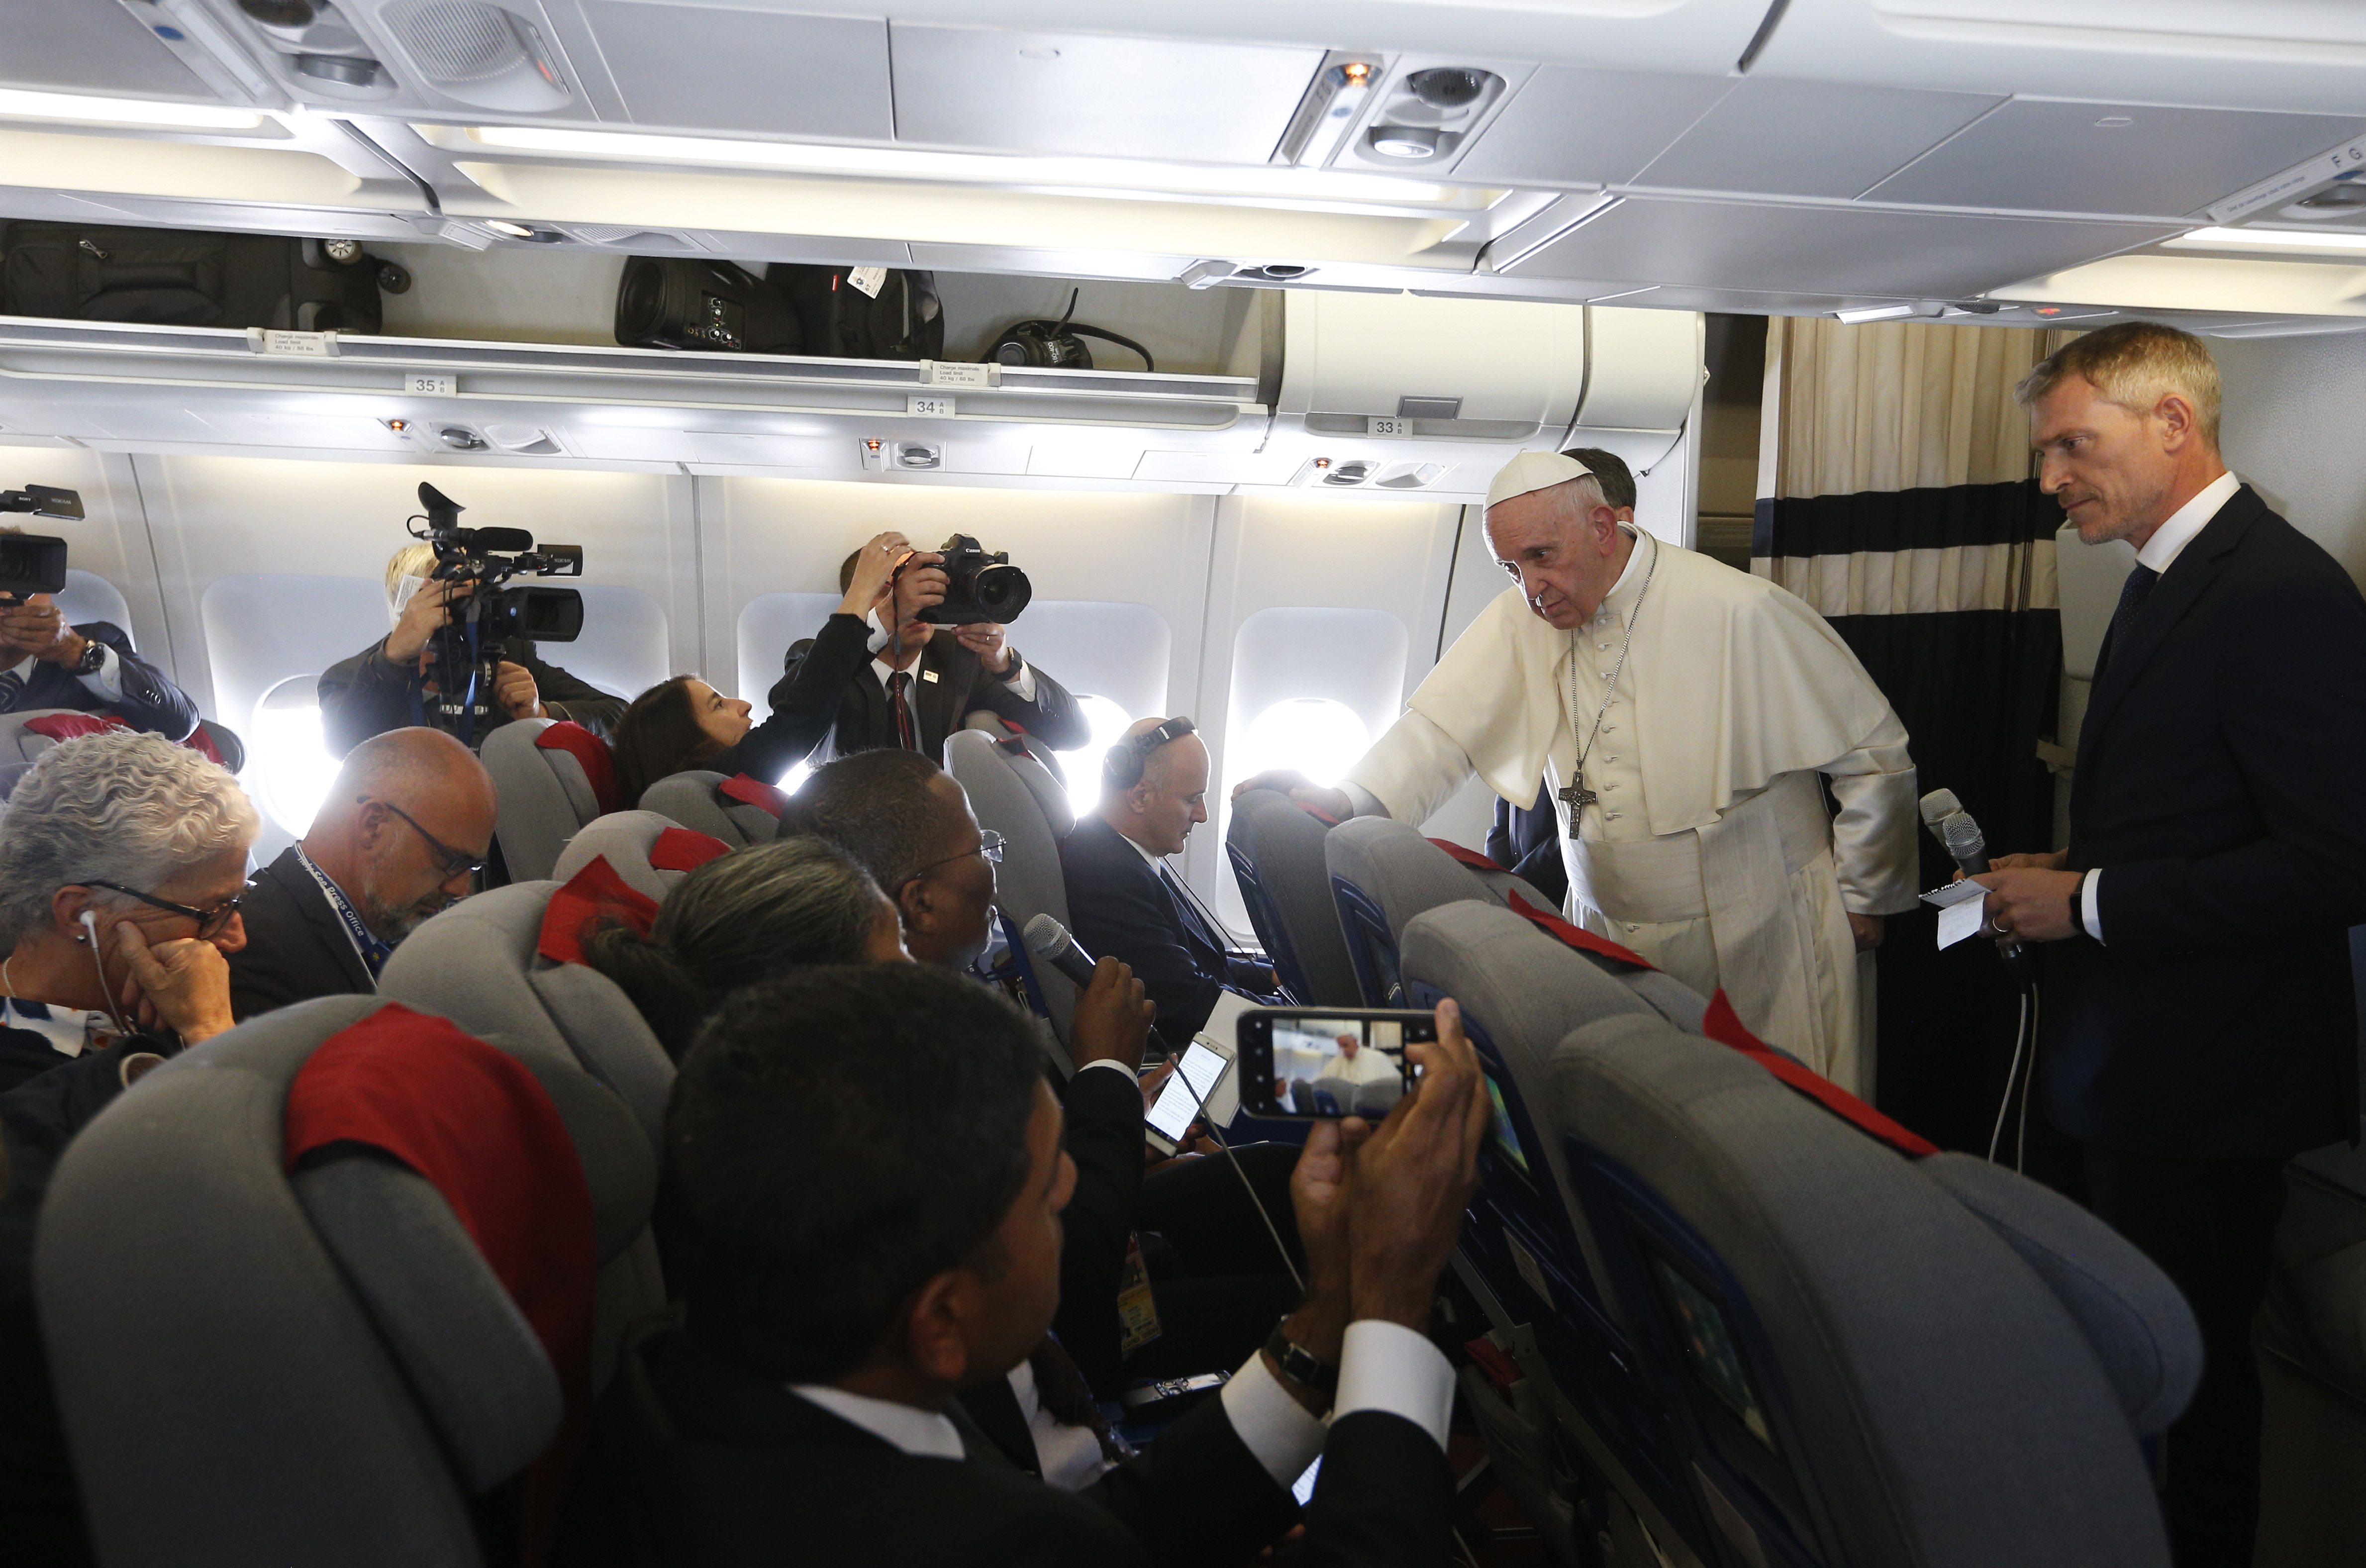 'Just the facts,' pope tells reporters, commenting on news media